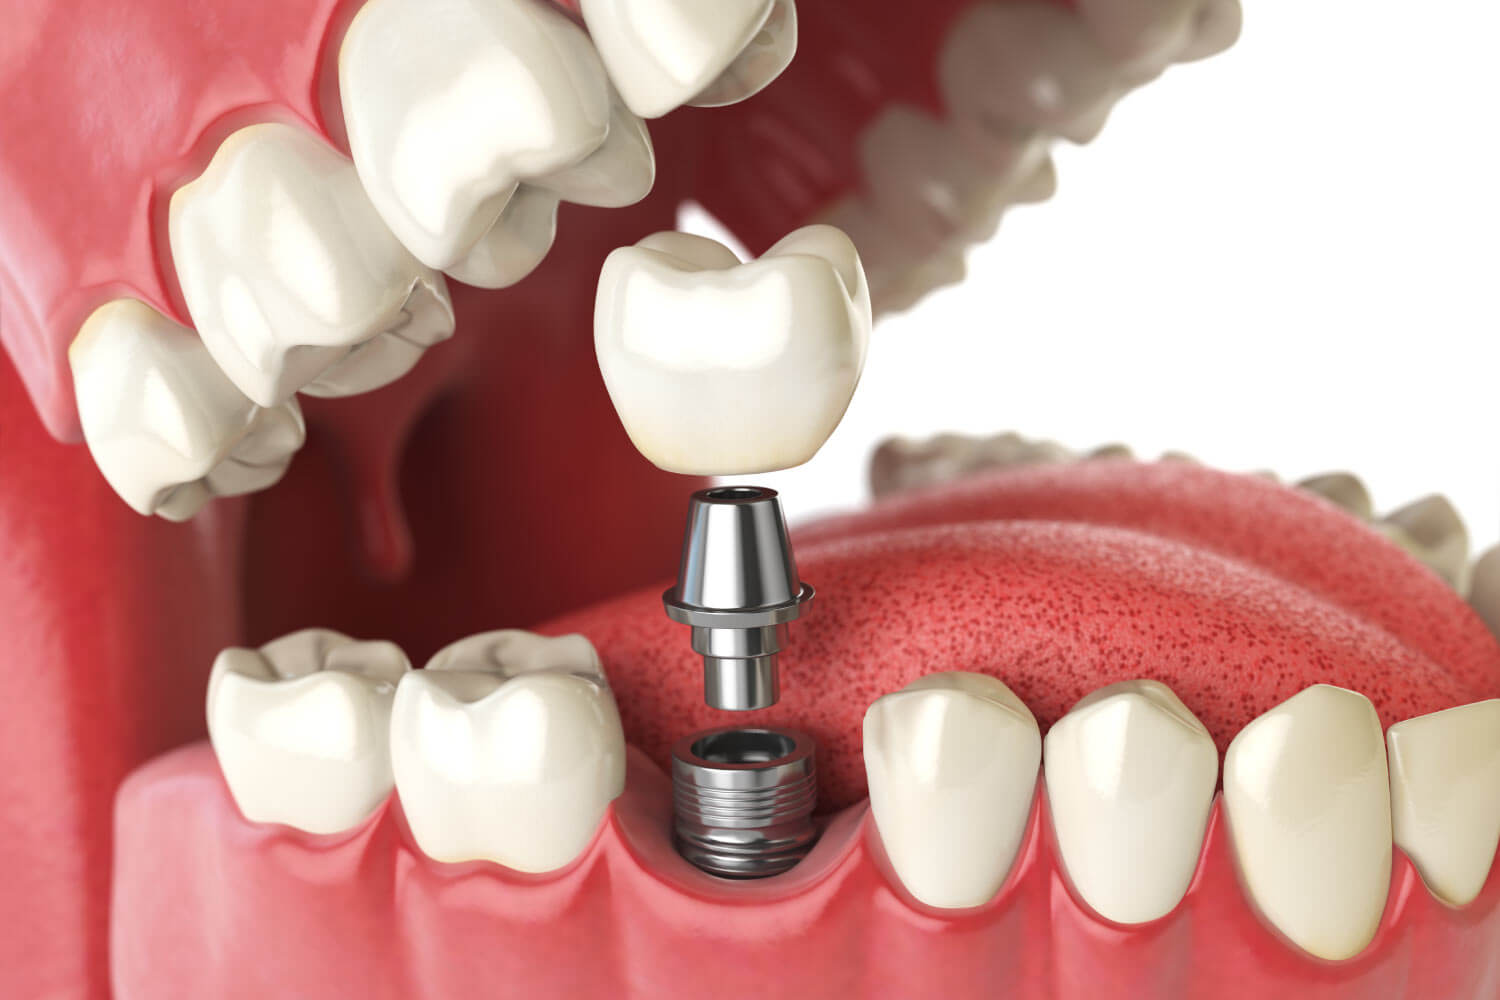 Closeup of a dental implant to replace a missing tooth